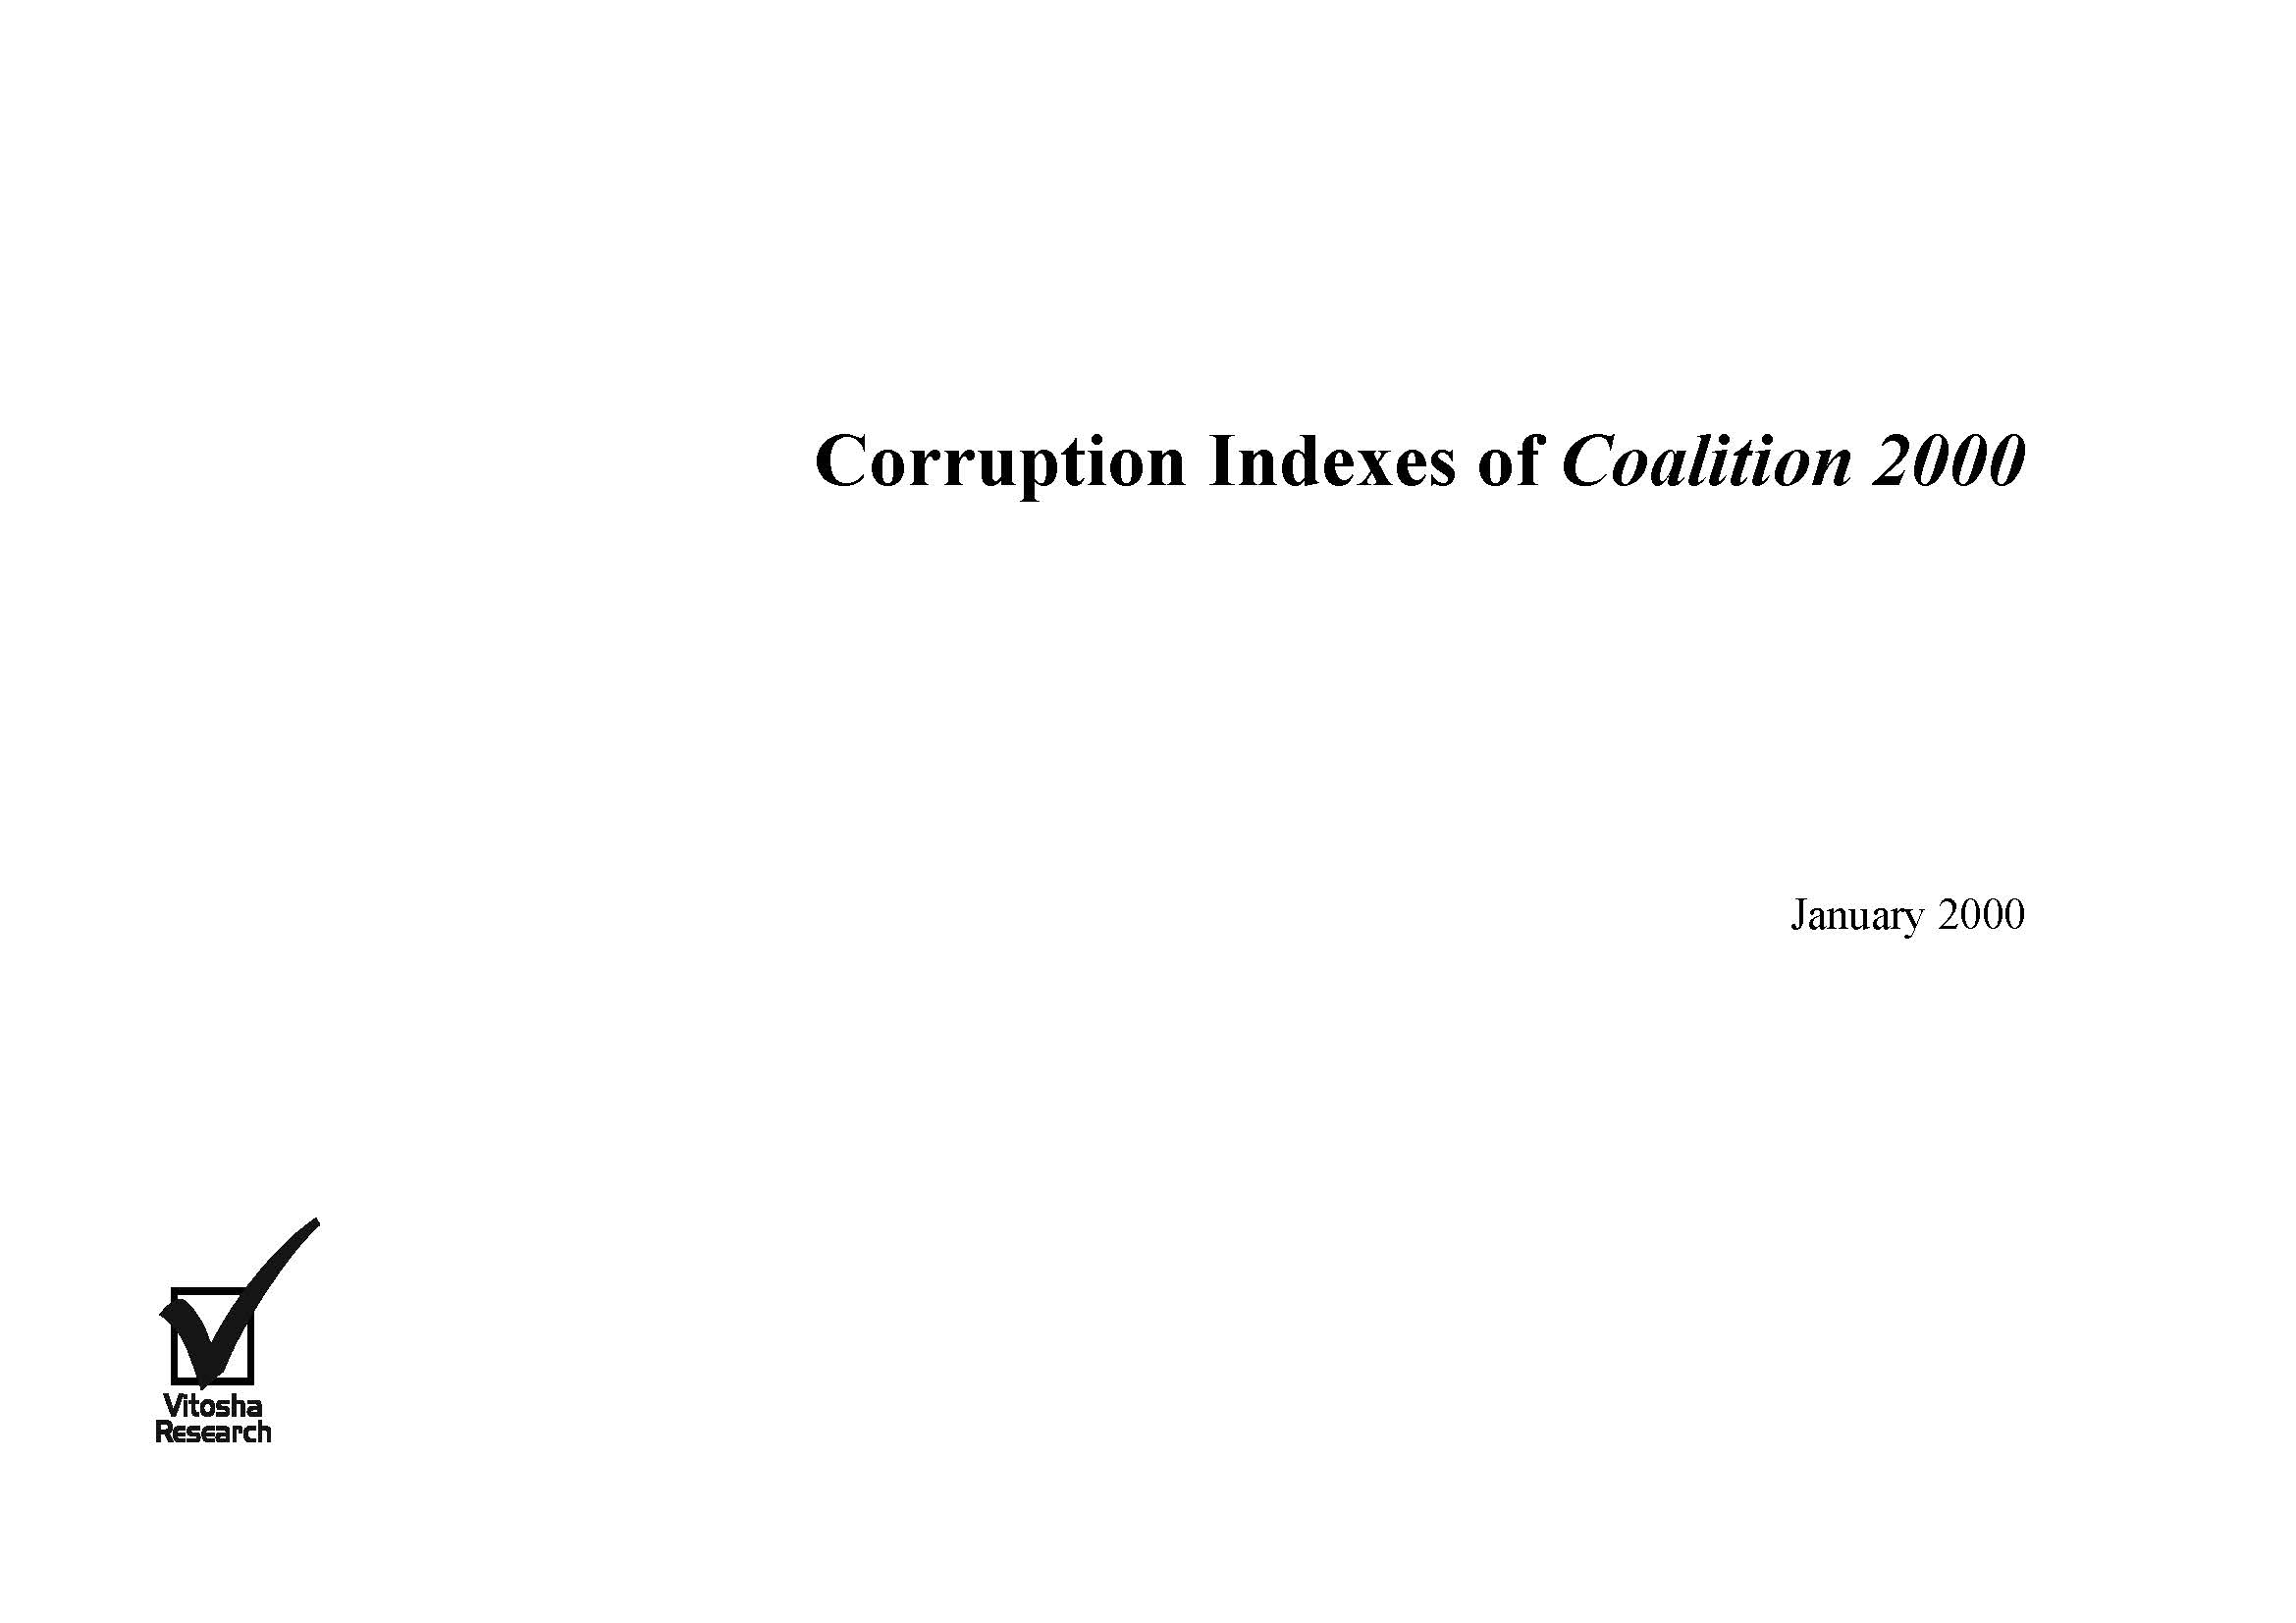 Corruption Indexes of Coalition 2000, January 2000